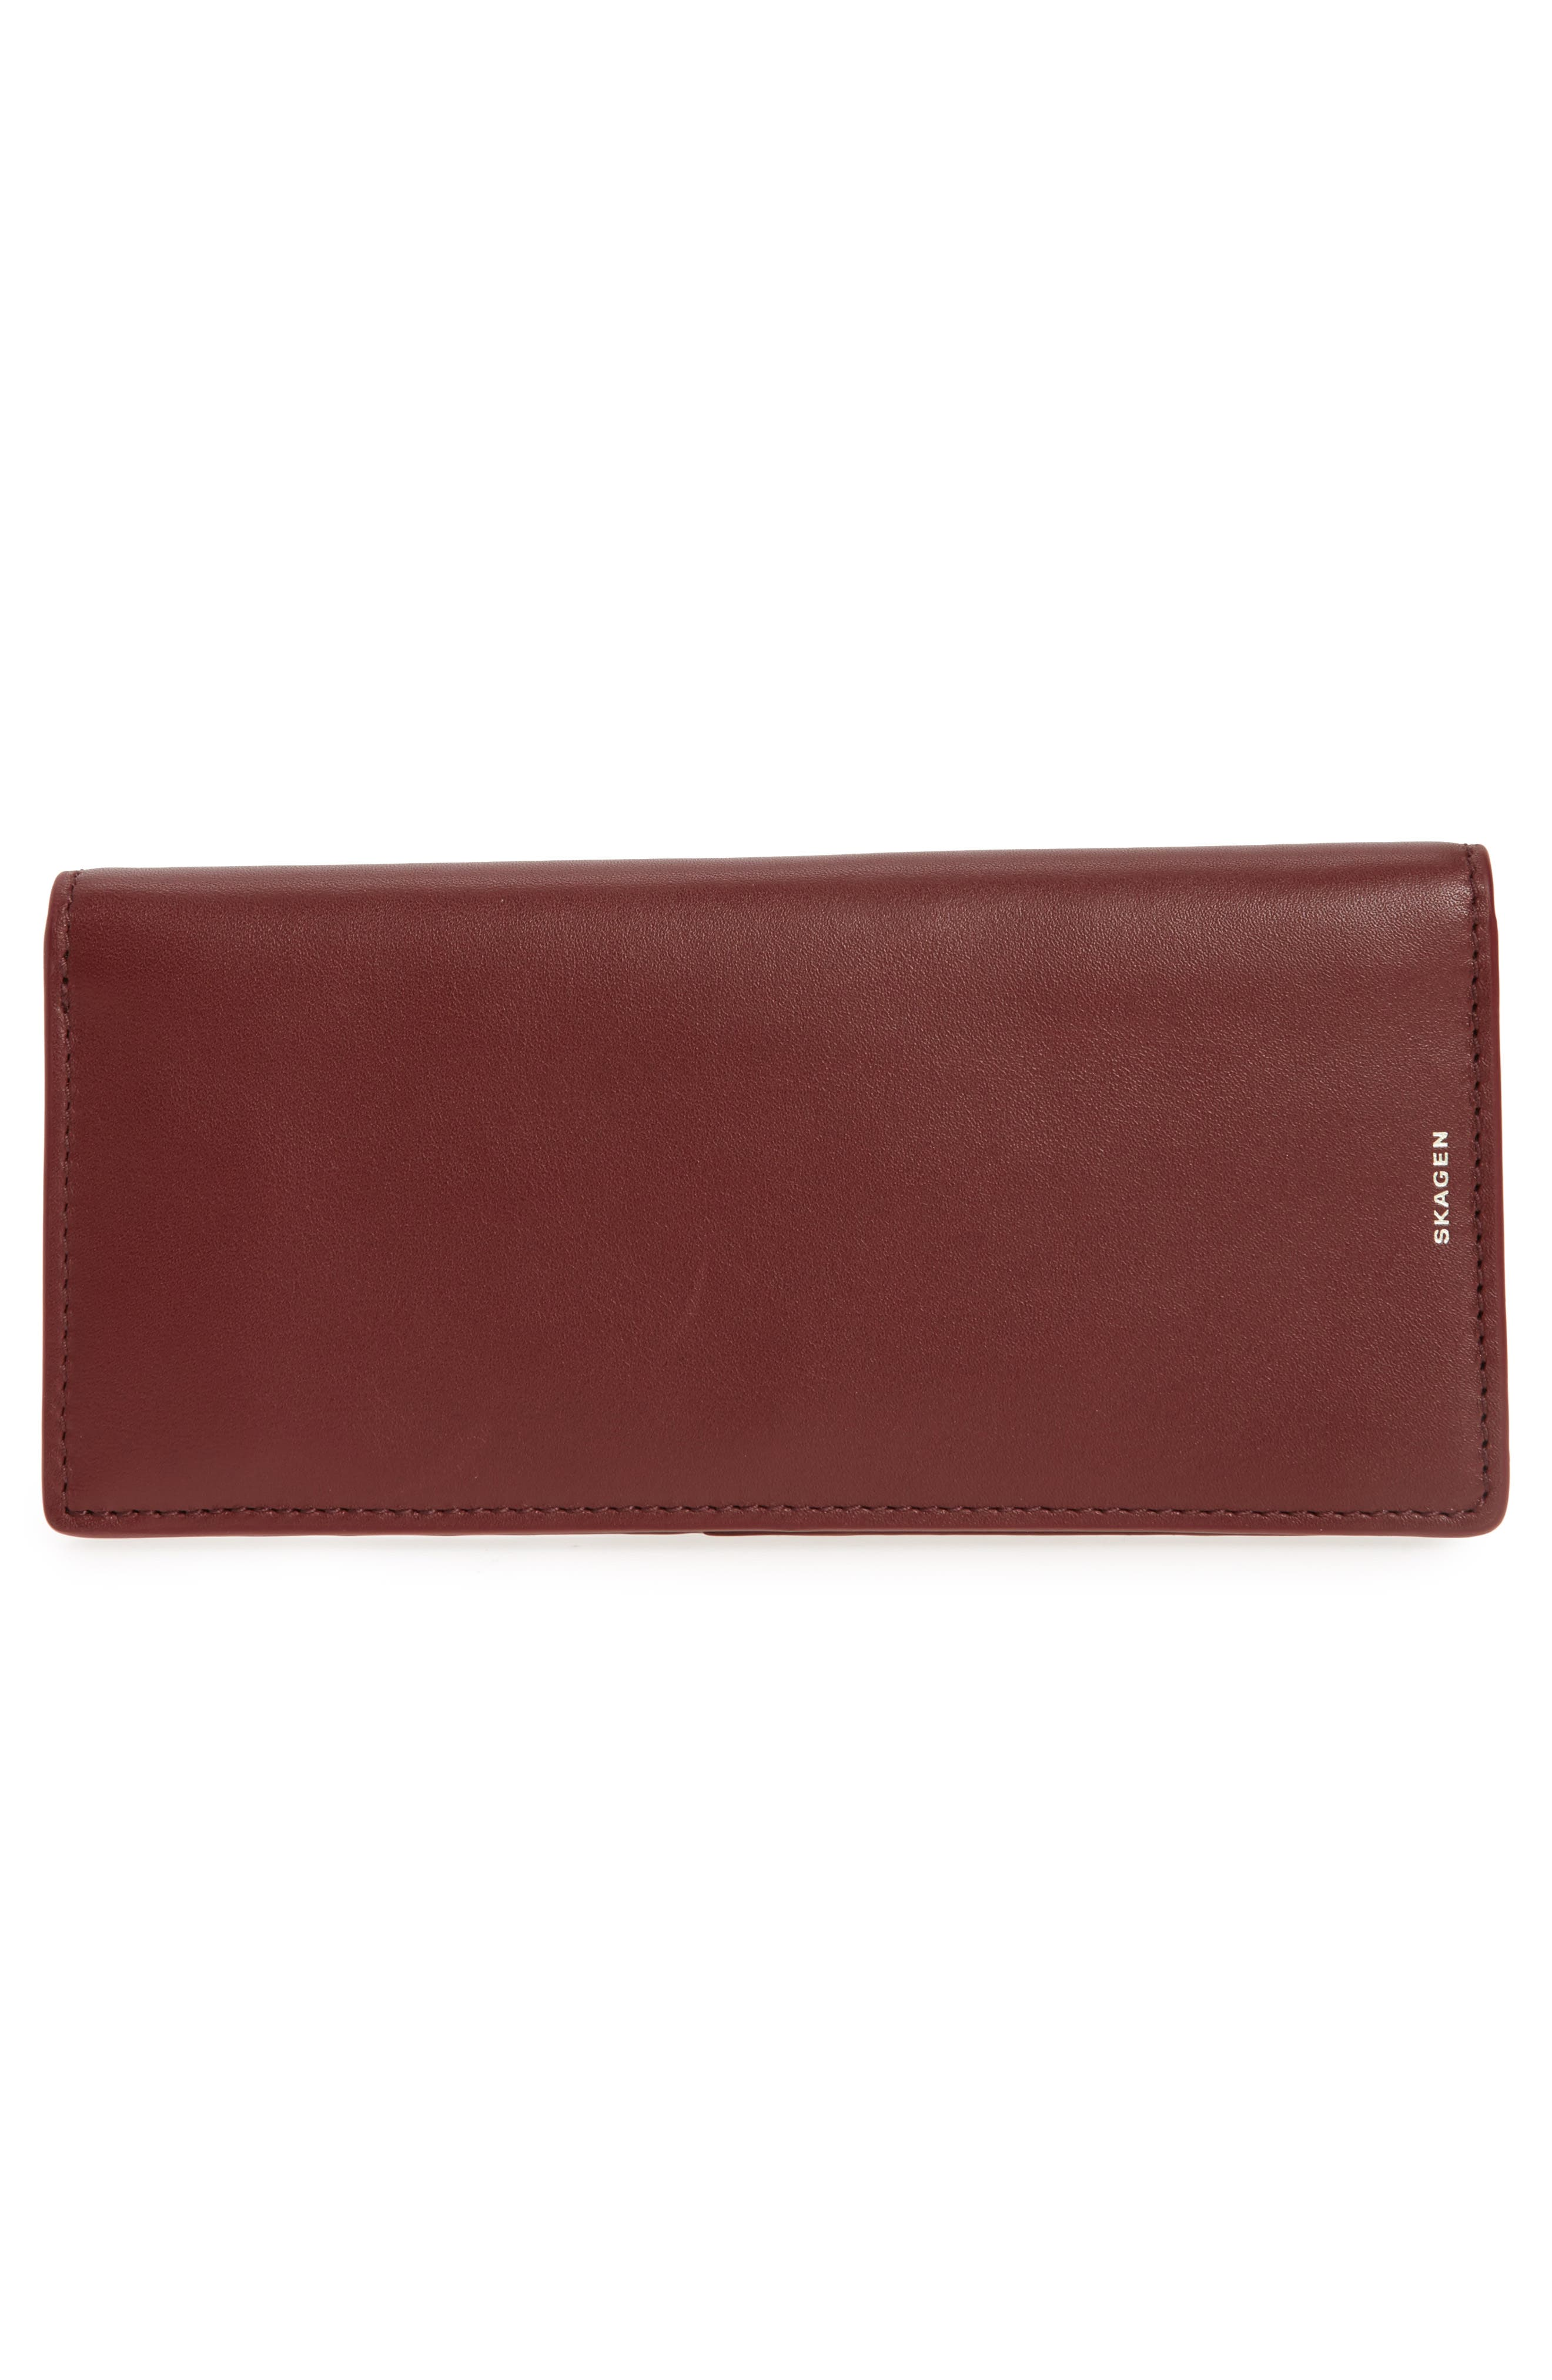 Slim Vertical Leather Wallet,                             Alternate thumbnail 3, color,                             Cordovan